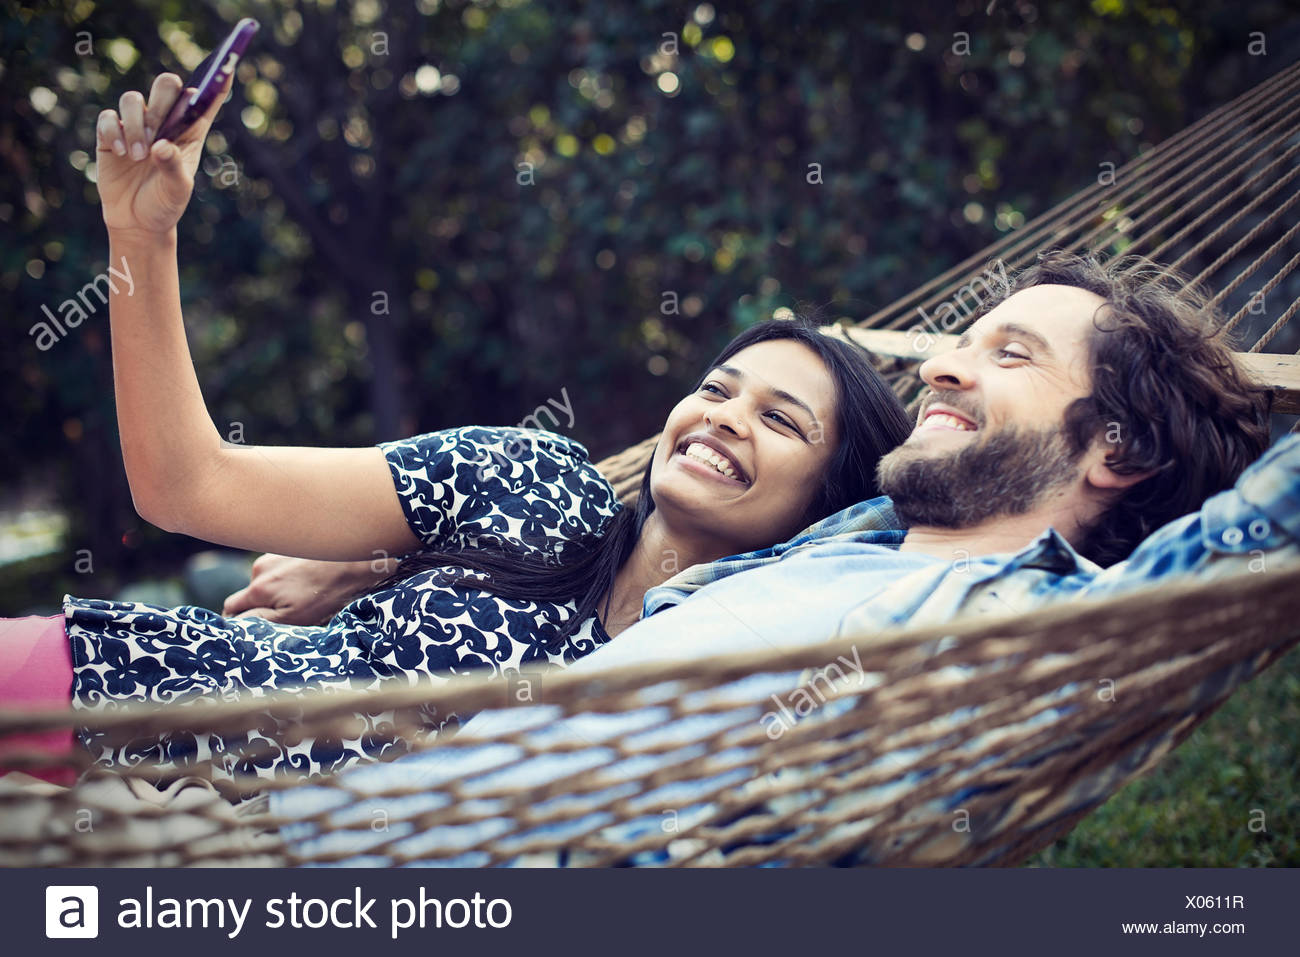 A couple, a young man and woman lying in a large hammock in the garden, taking a selfy of themselves. - Stock Image